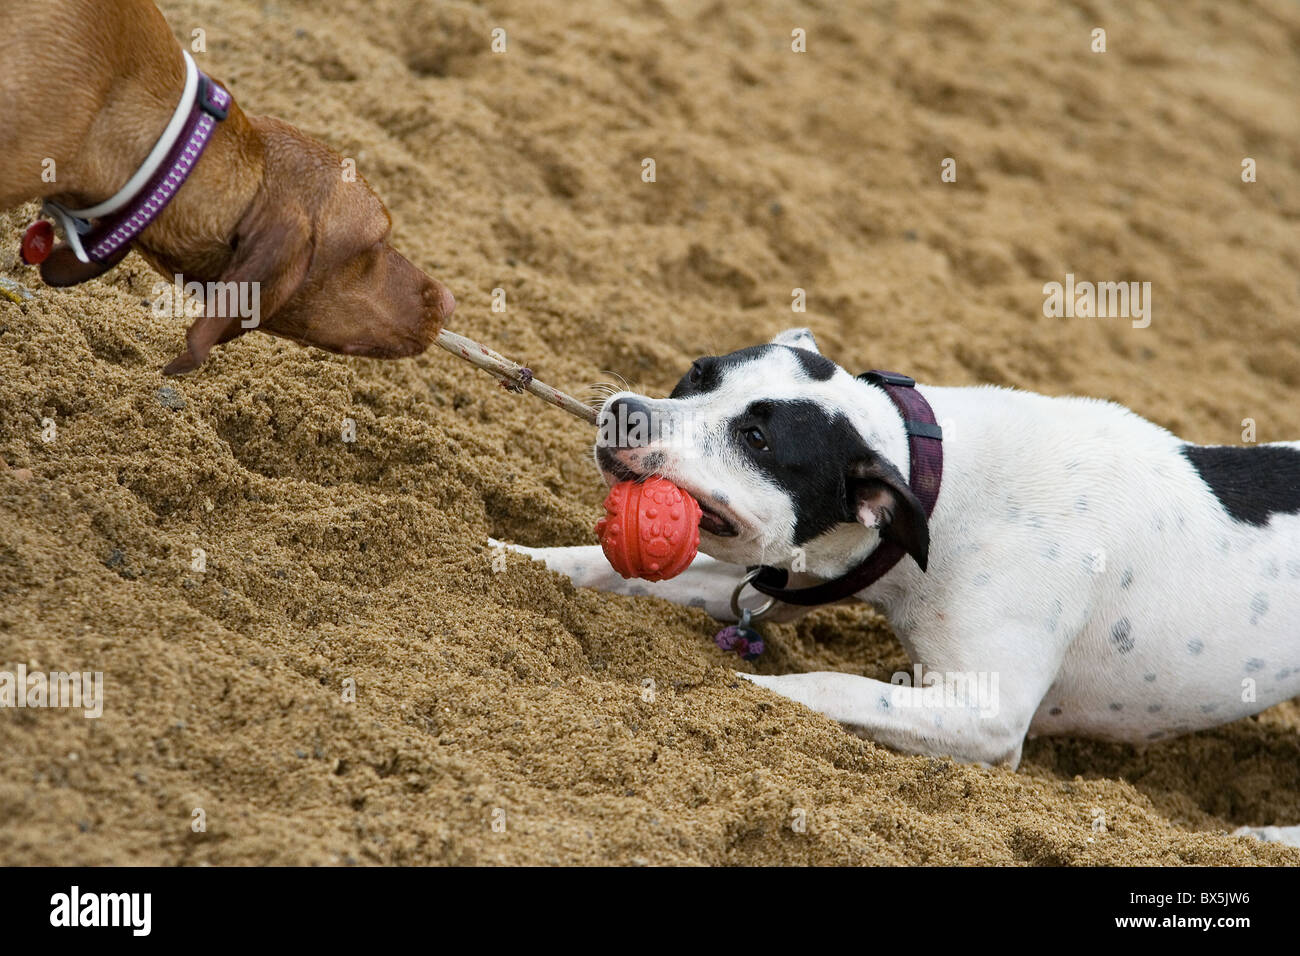 two dogs playing with a toy - Stock Image